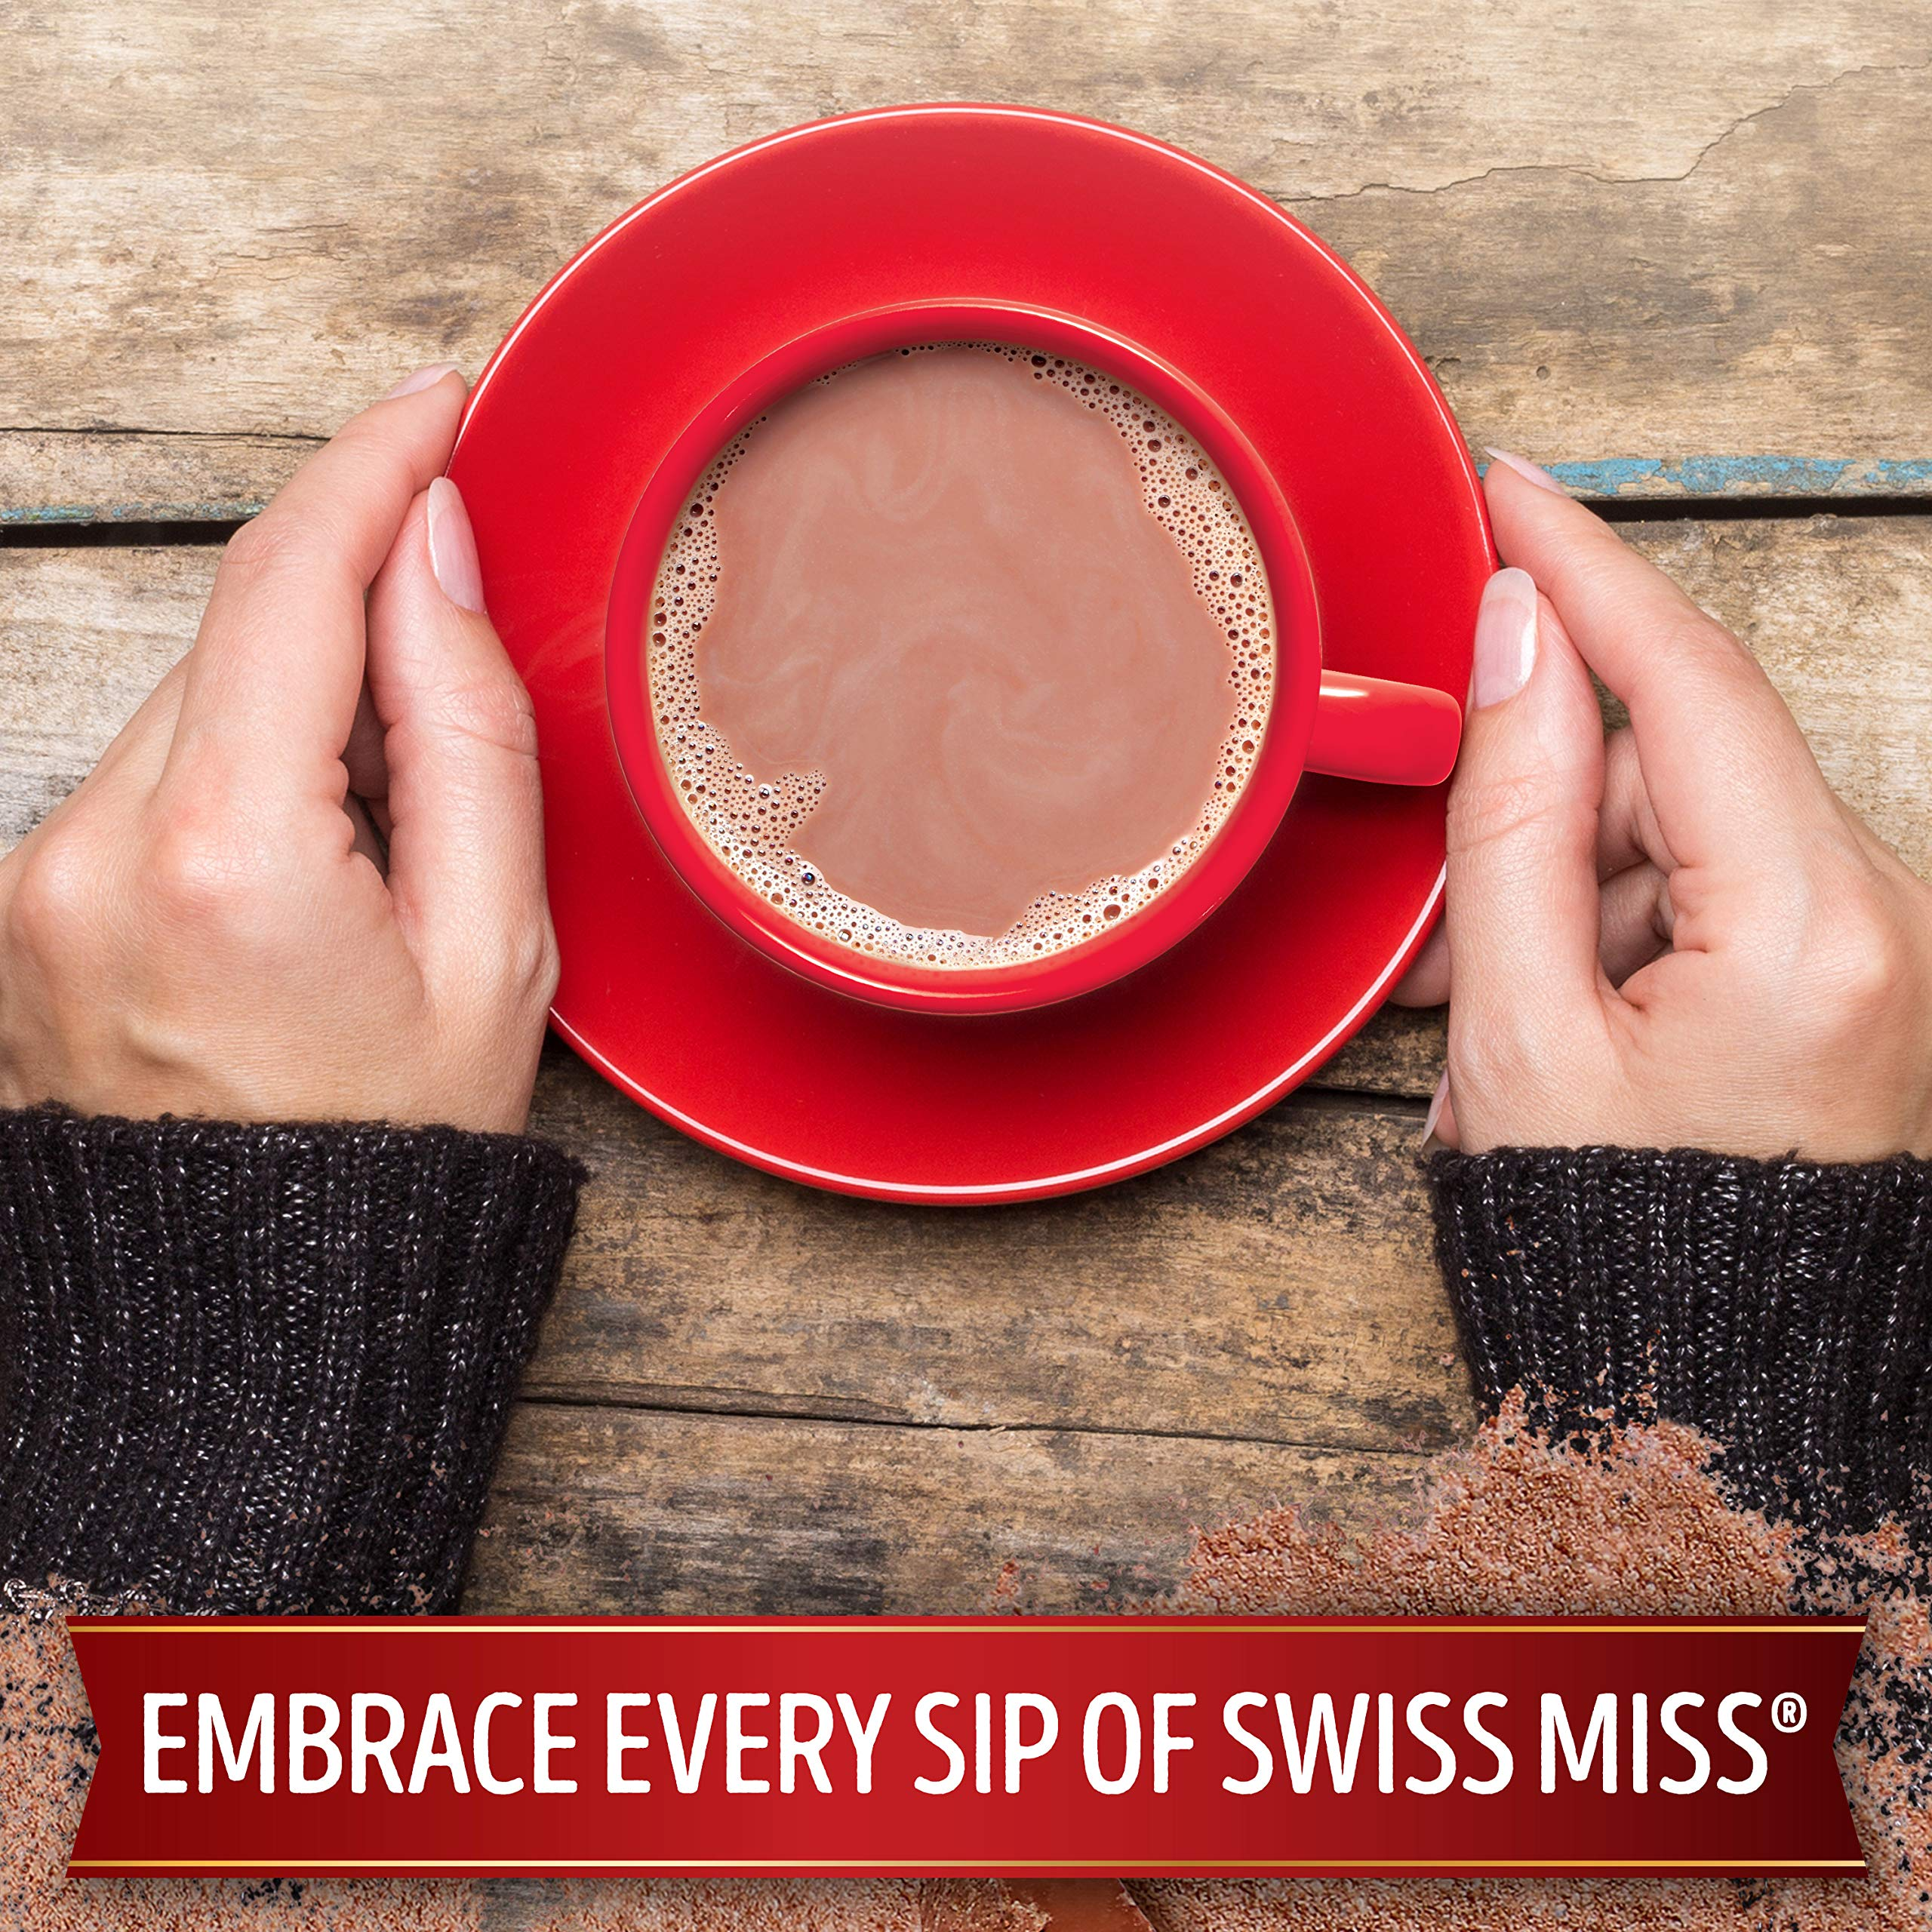 Swiss Miss Milk Chocolate Flavor Hot Cocoa Mix, 11.04 Ounce, 8 Count,(Pack of 12) by Swiss Miss (Image #6)